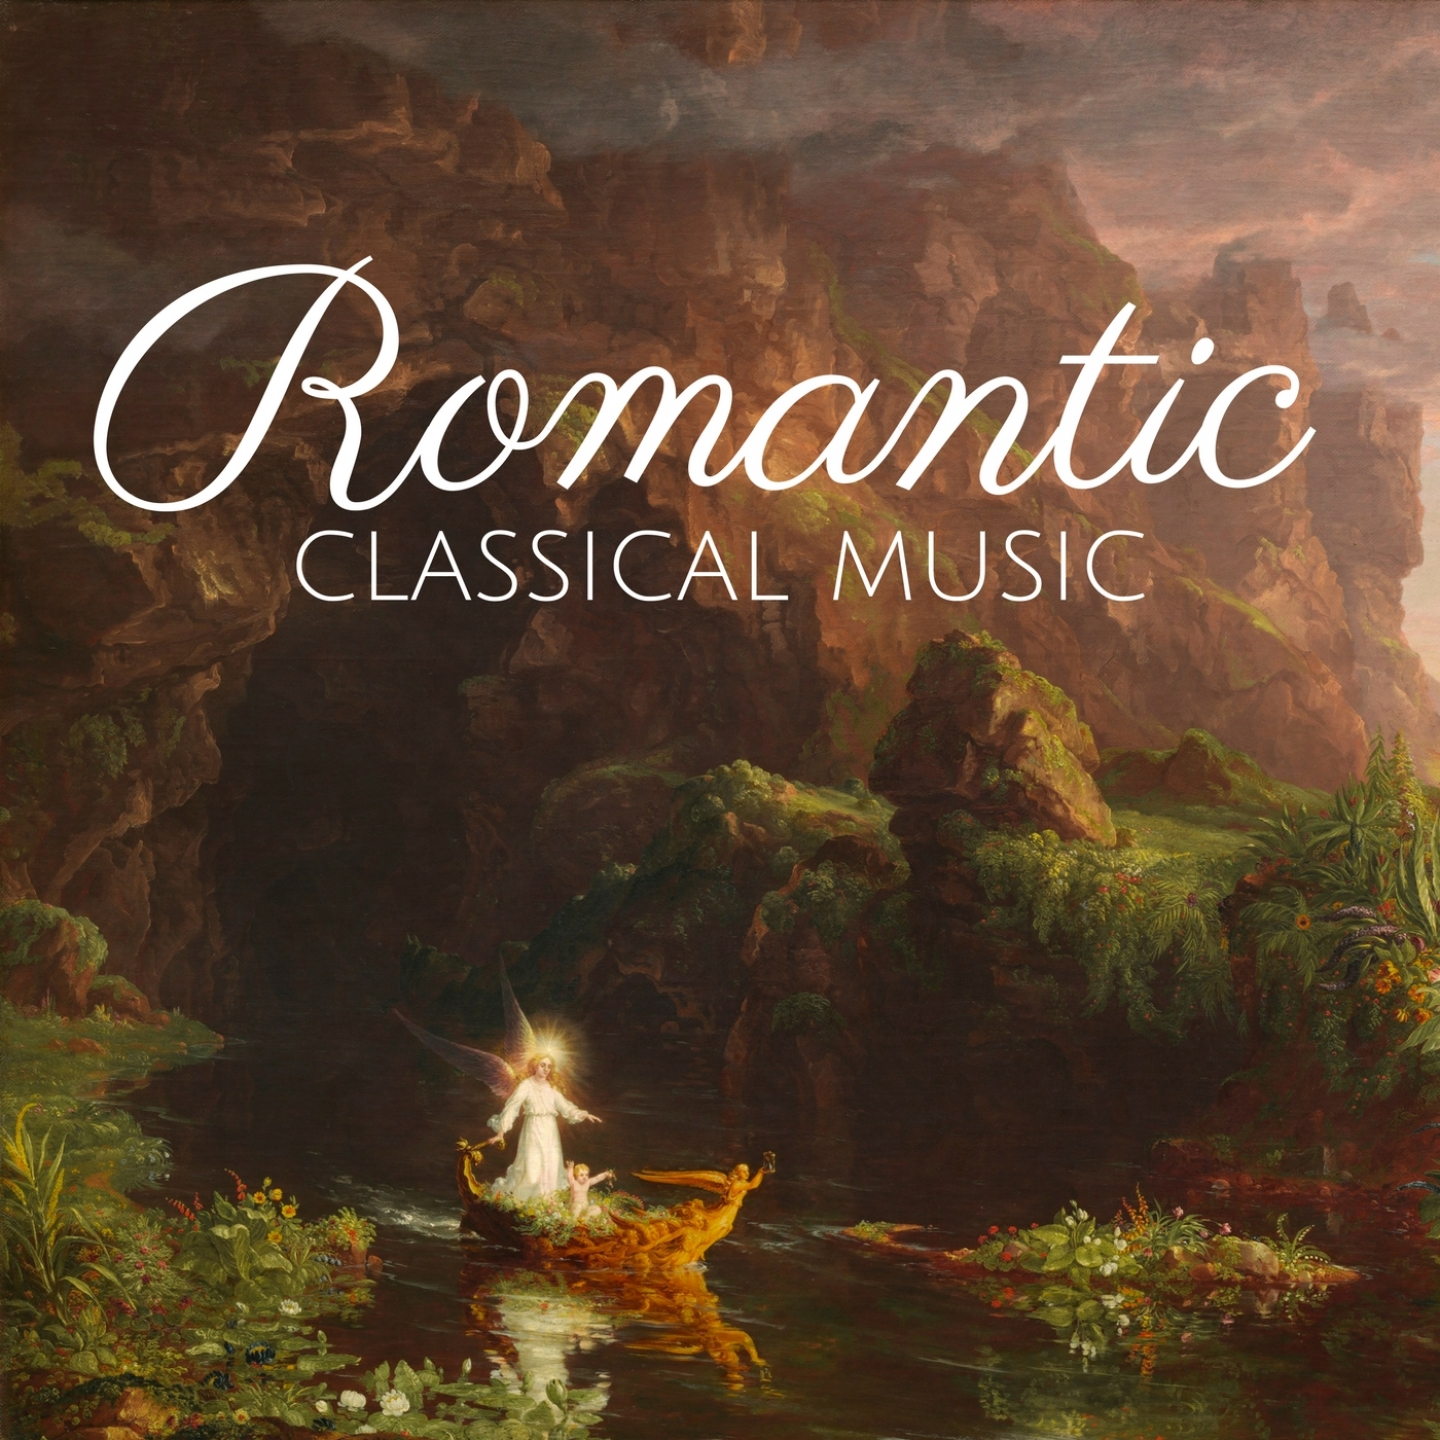 Romantic Music - Classical Music from the Romantic Period